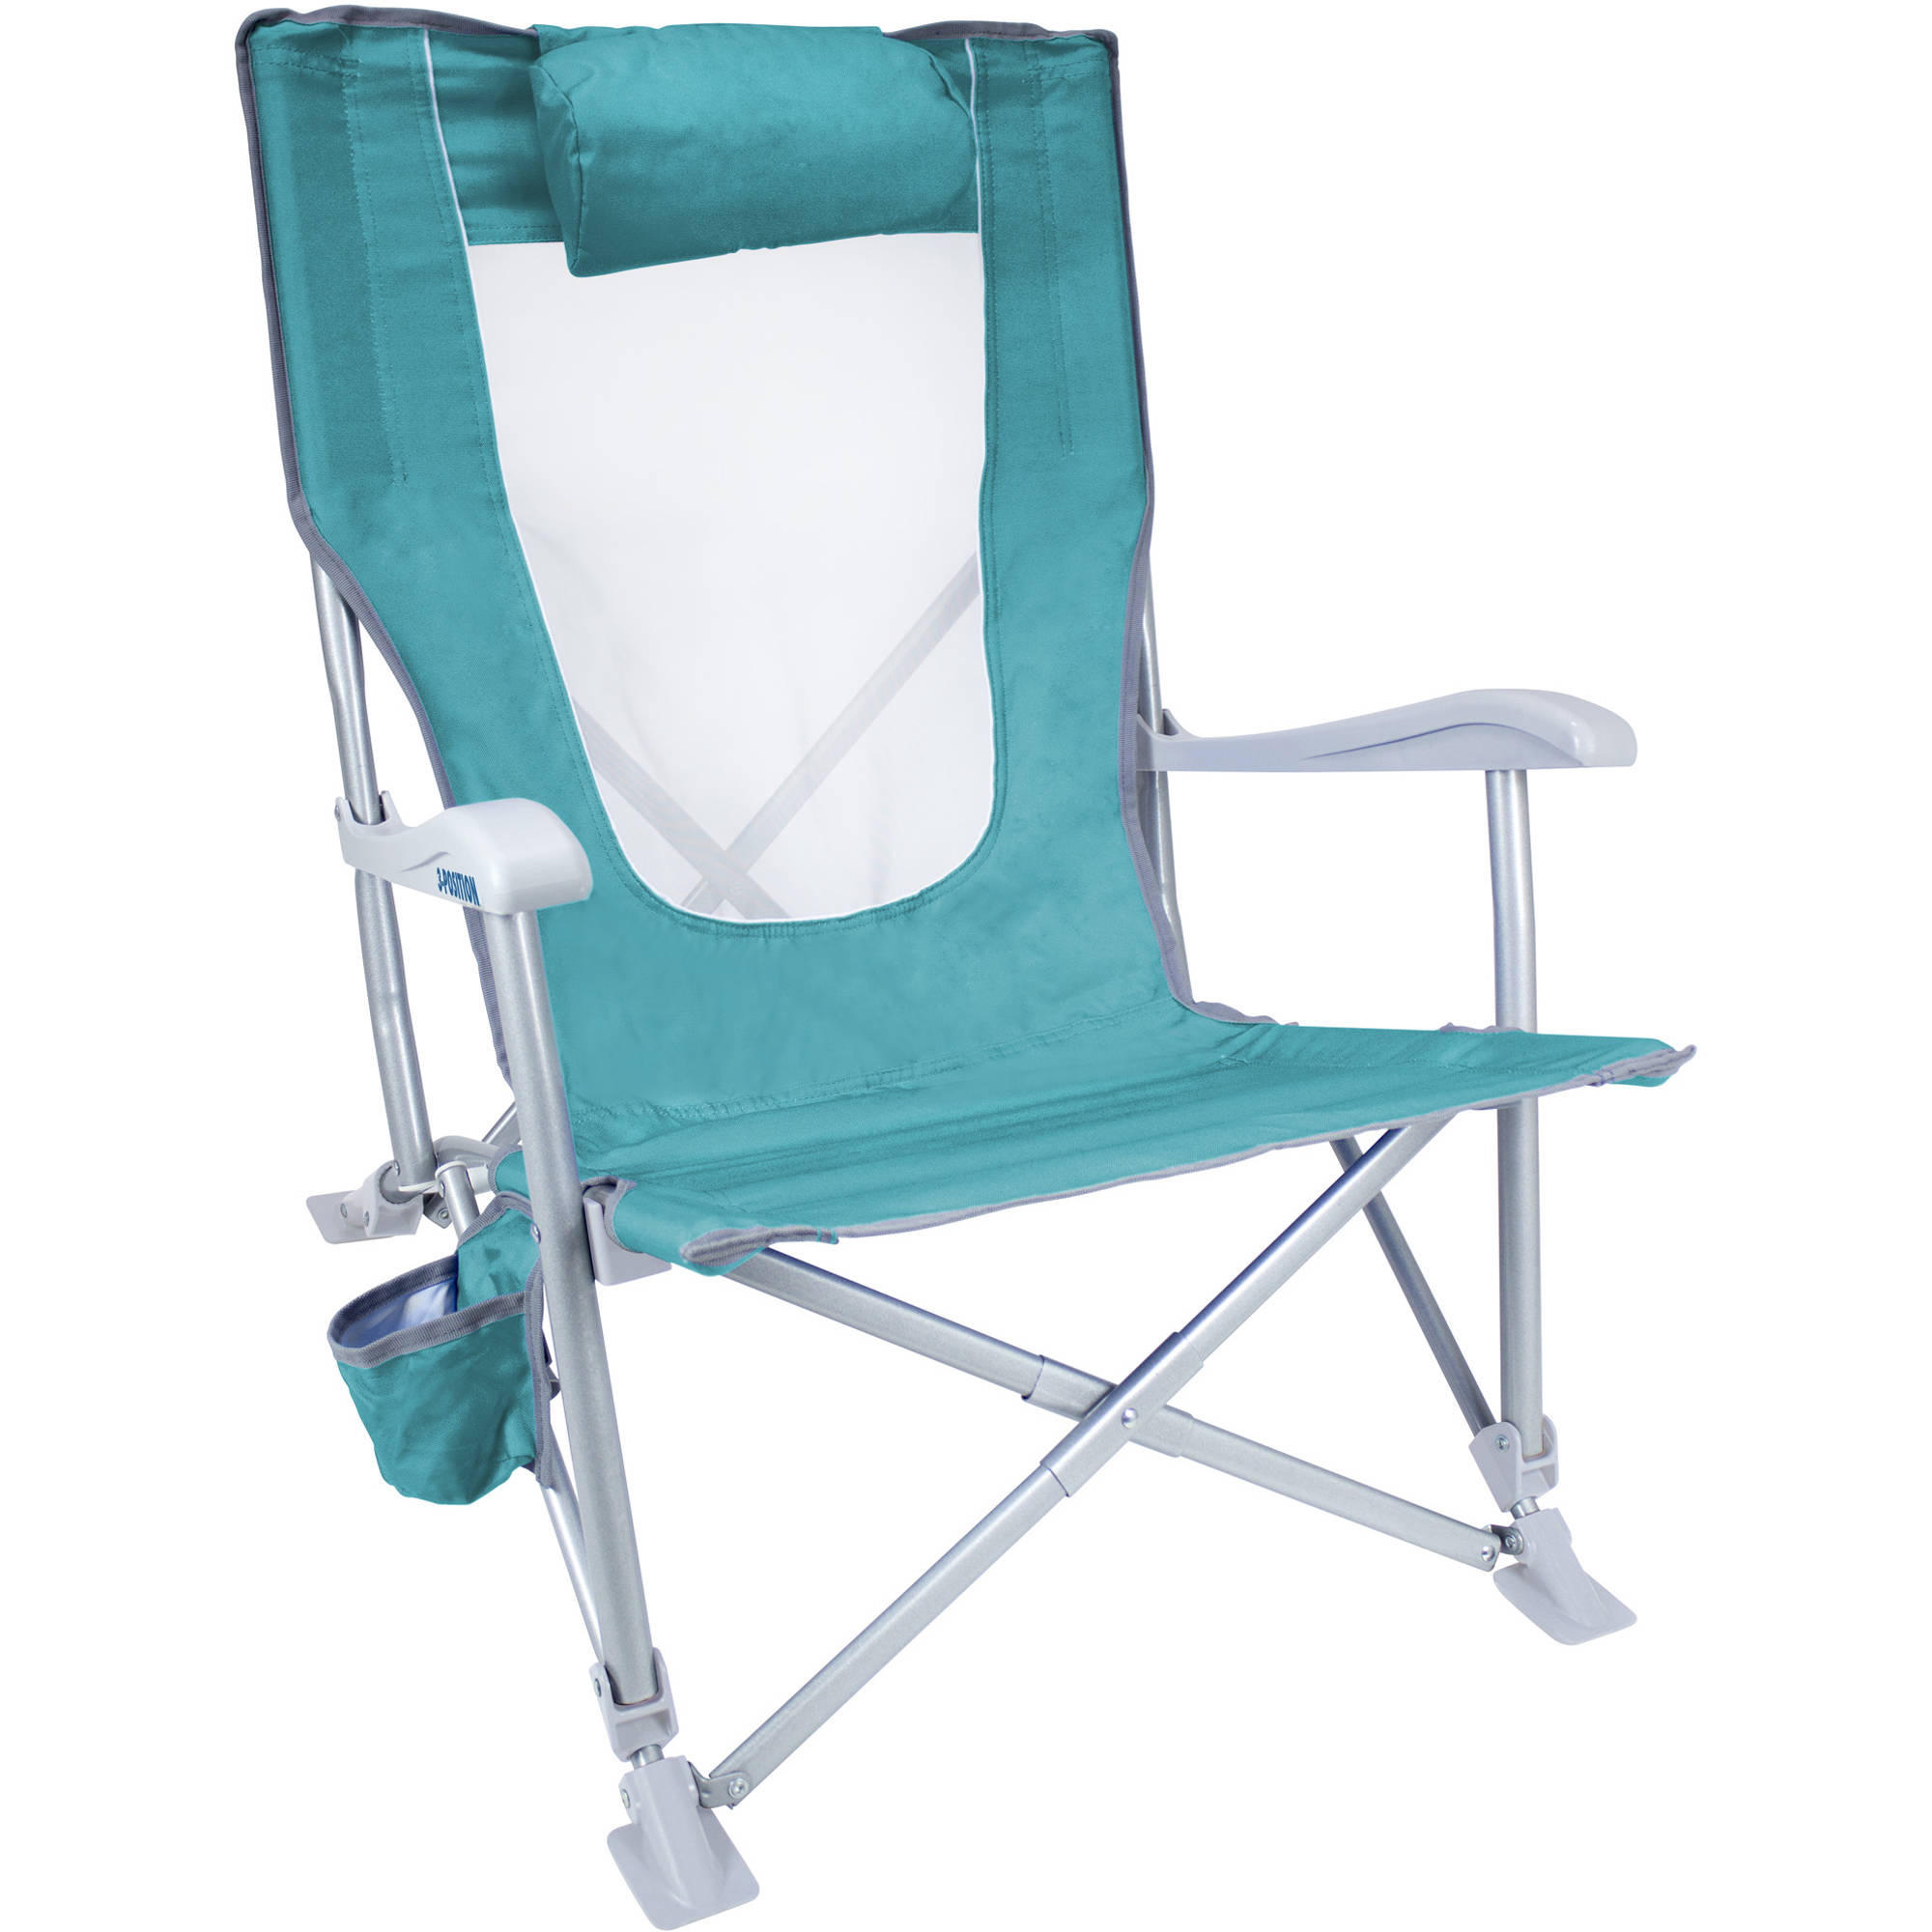 GCI Outdoor Sun Recliner Beach Chair (Seafoam Green) 61084 B&H